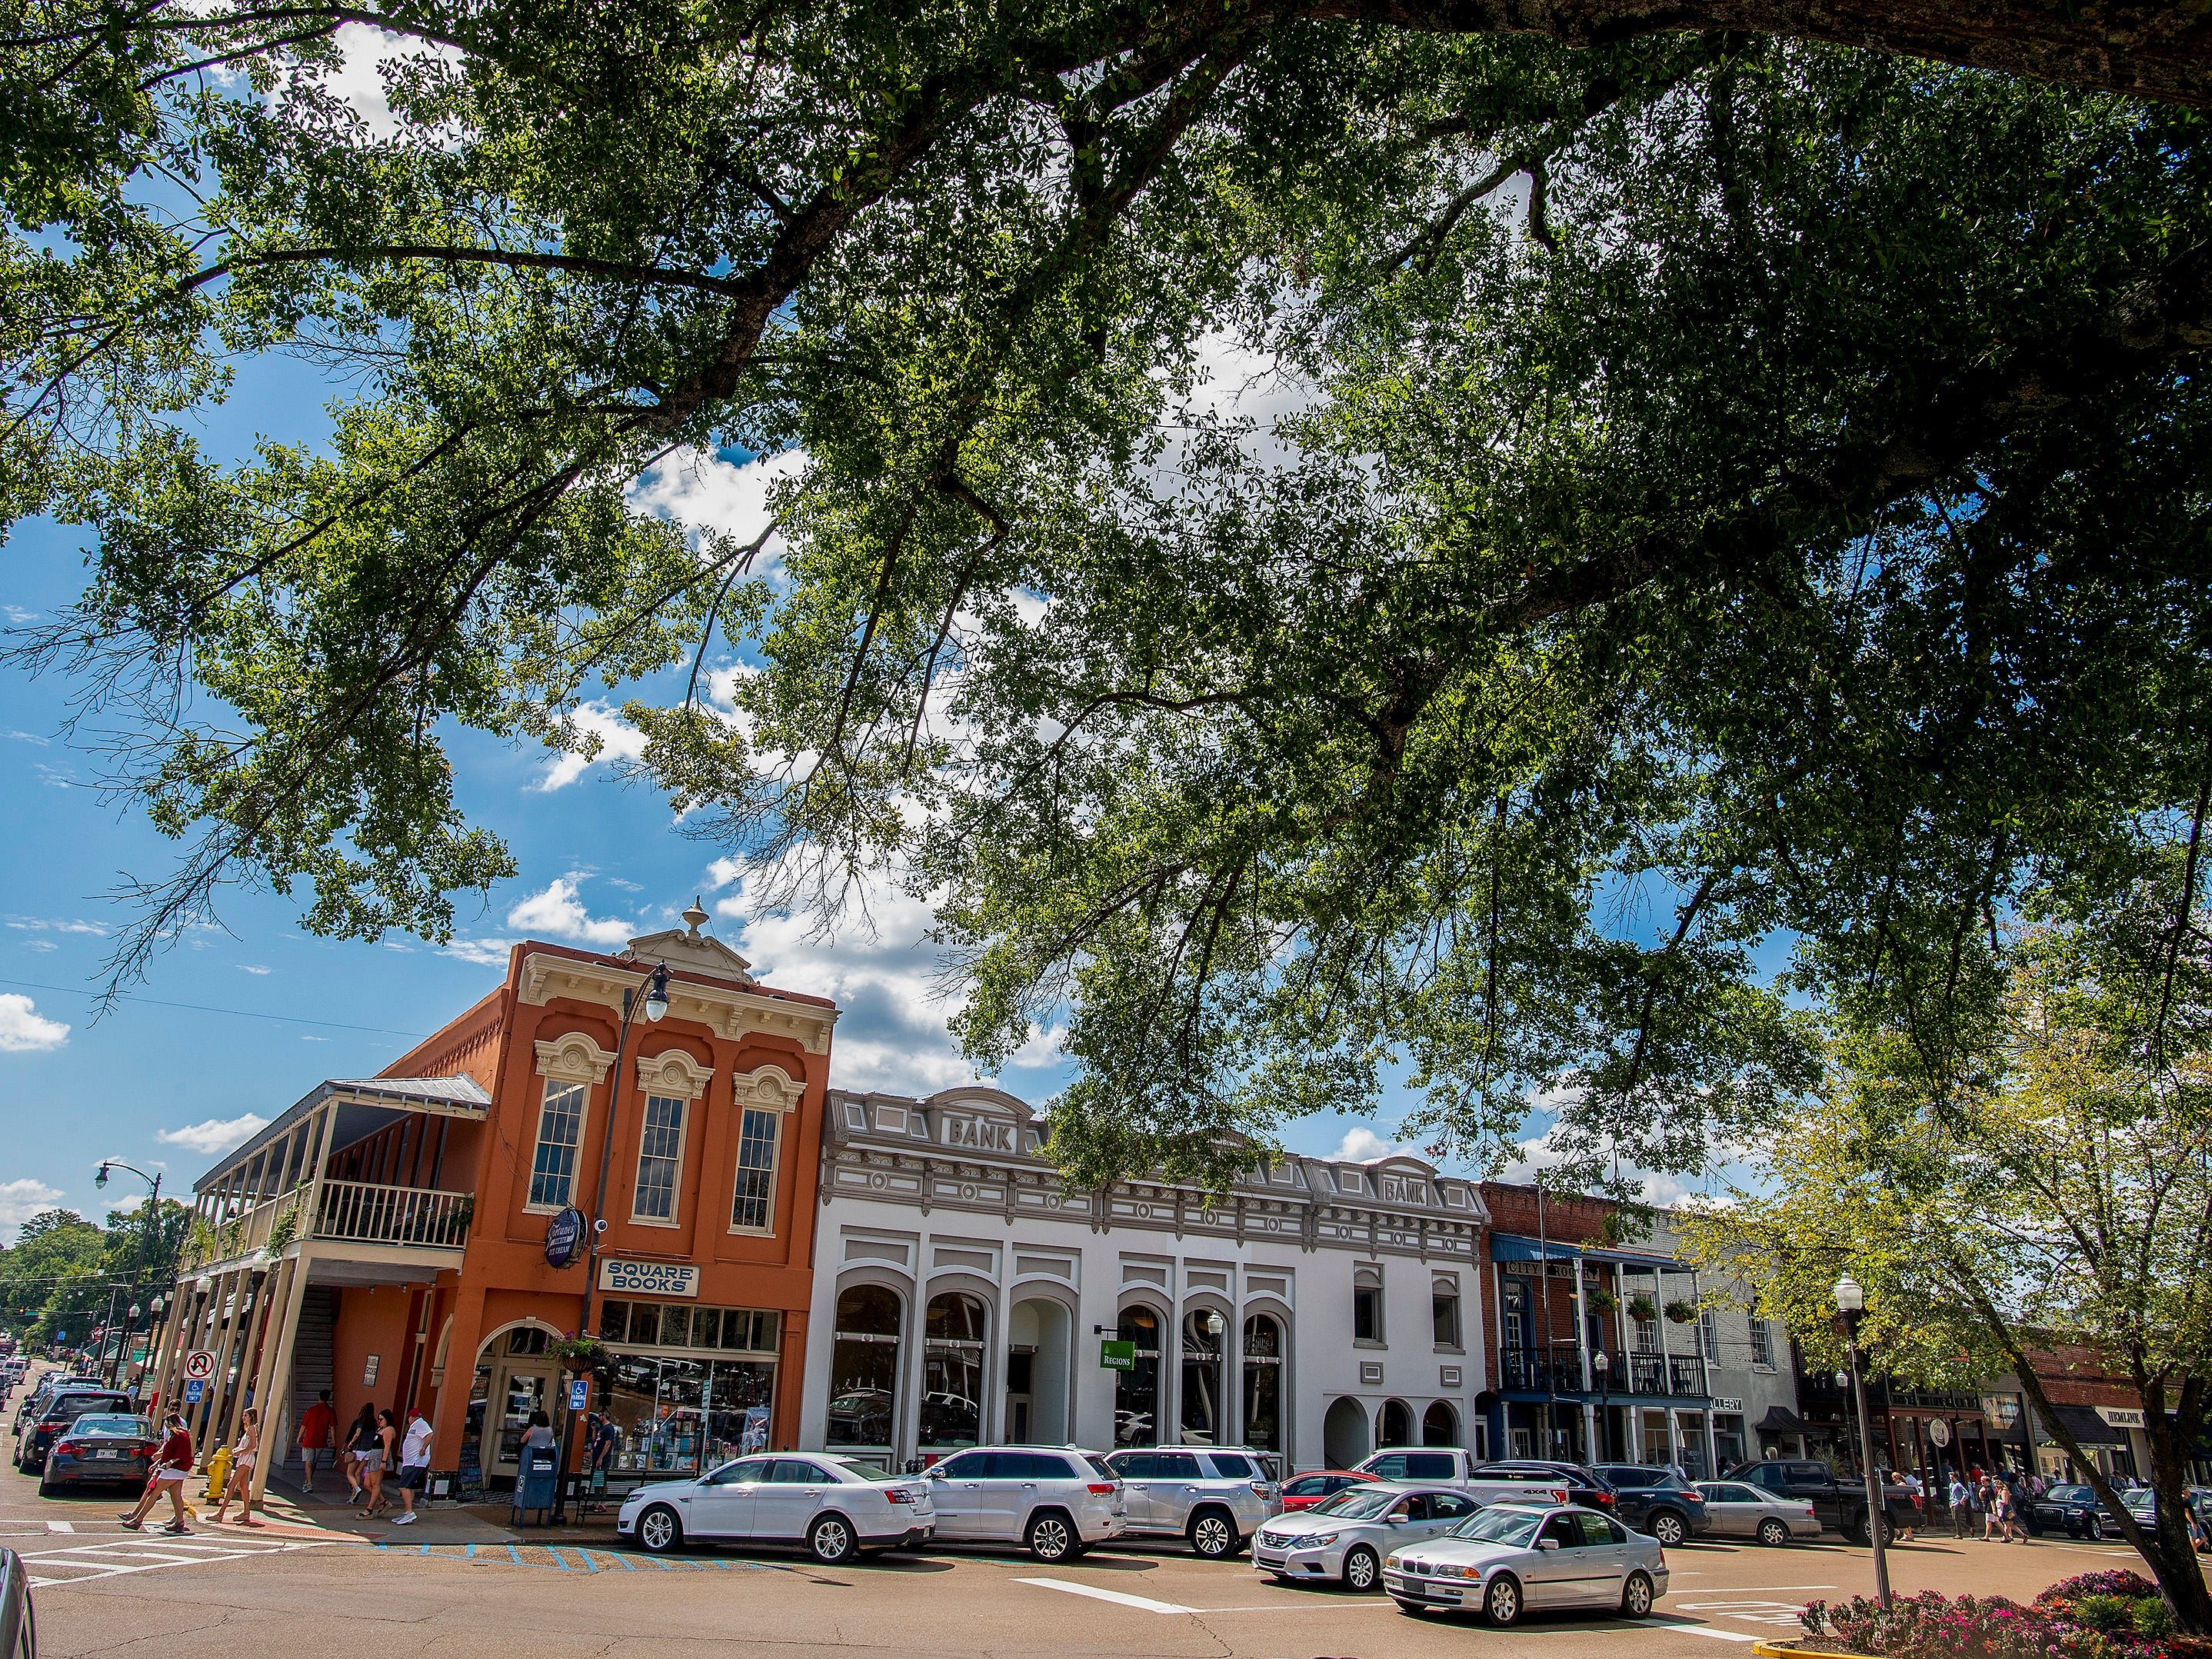 The Square in Oxford, Ms., on gameday Saturday September 15, 2018.